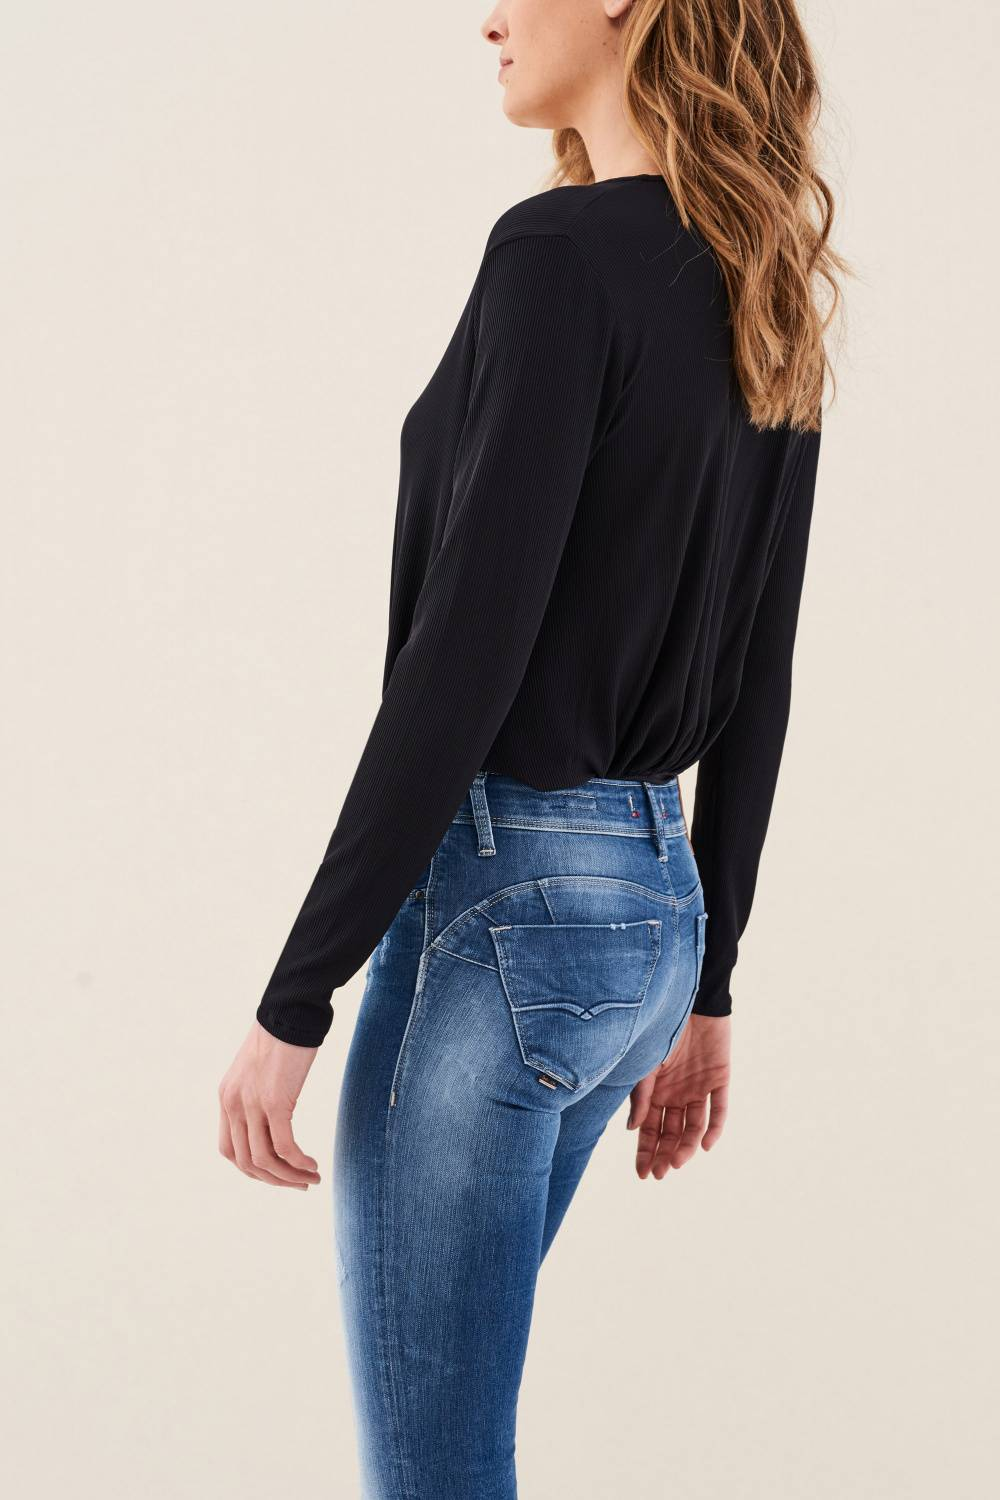 Body jumper with lace detail - Salsa